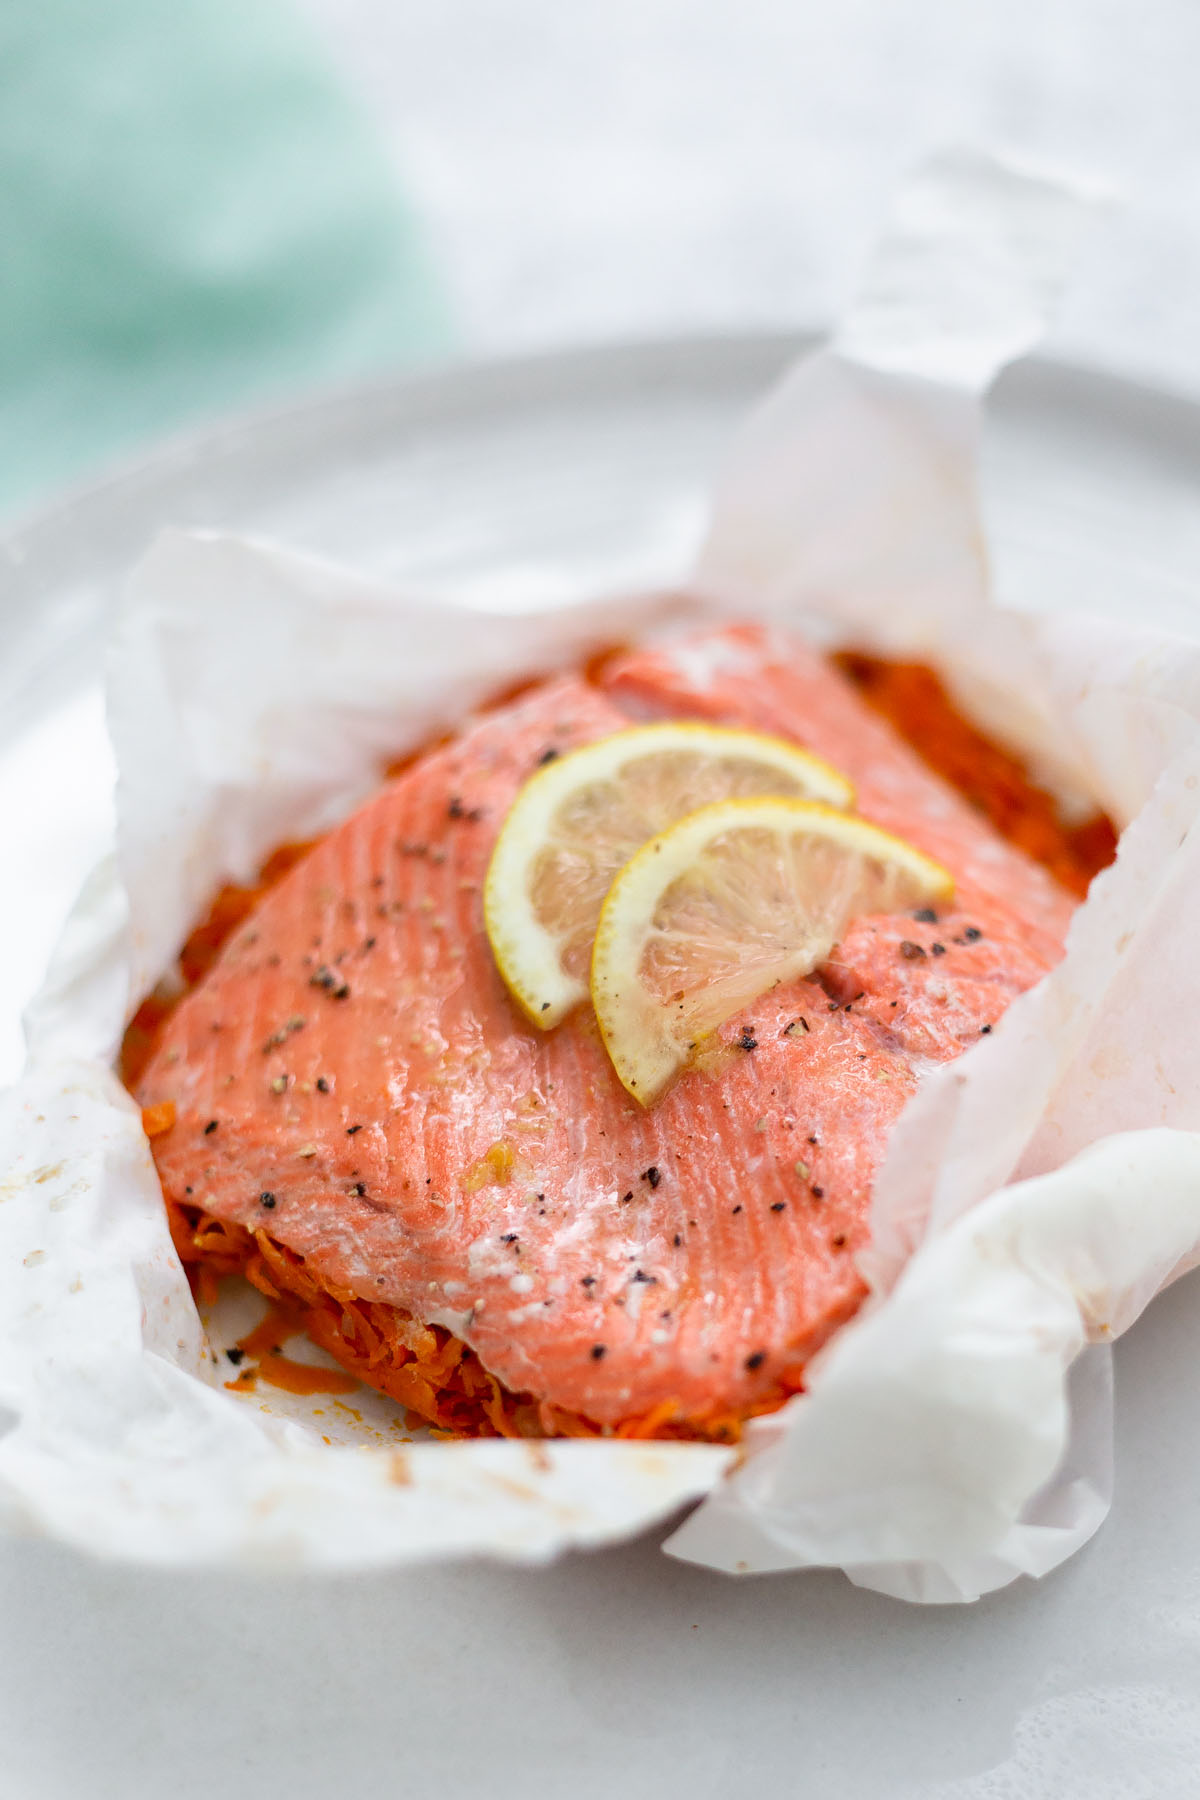 salmon in parchment up close with lemon slices